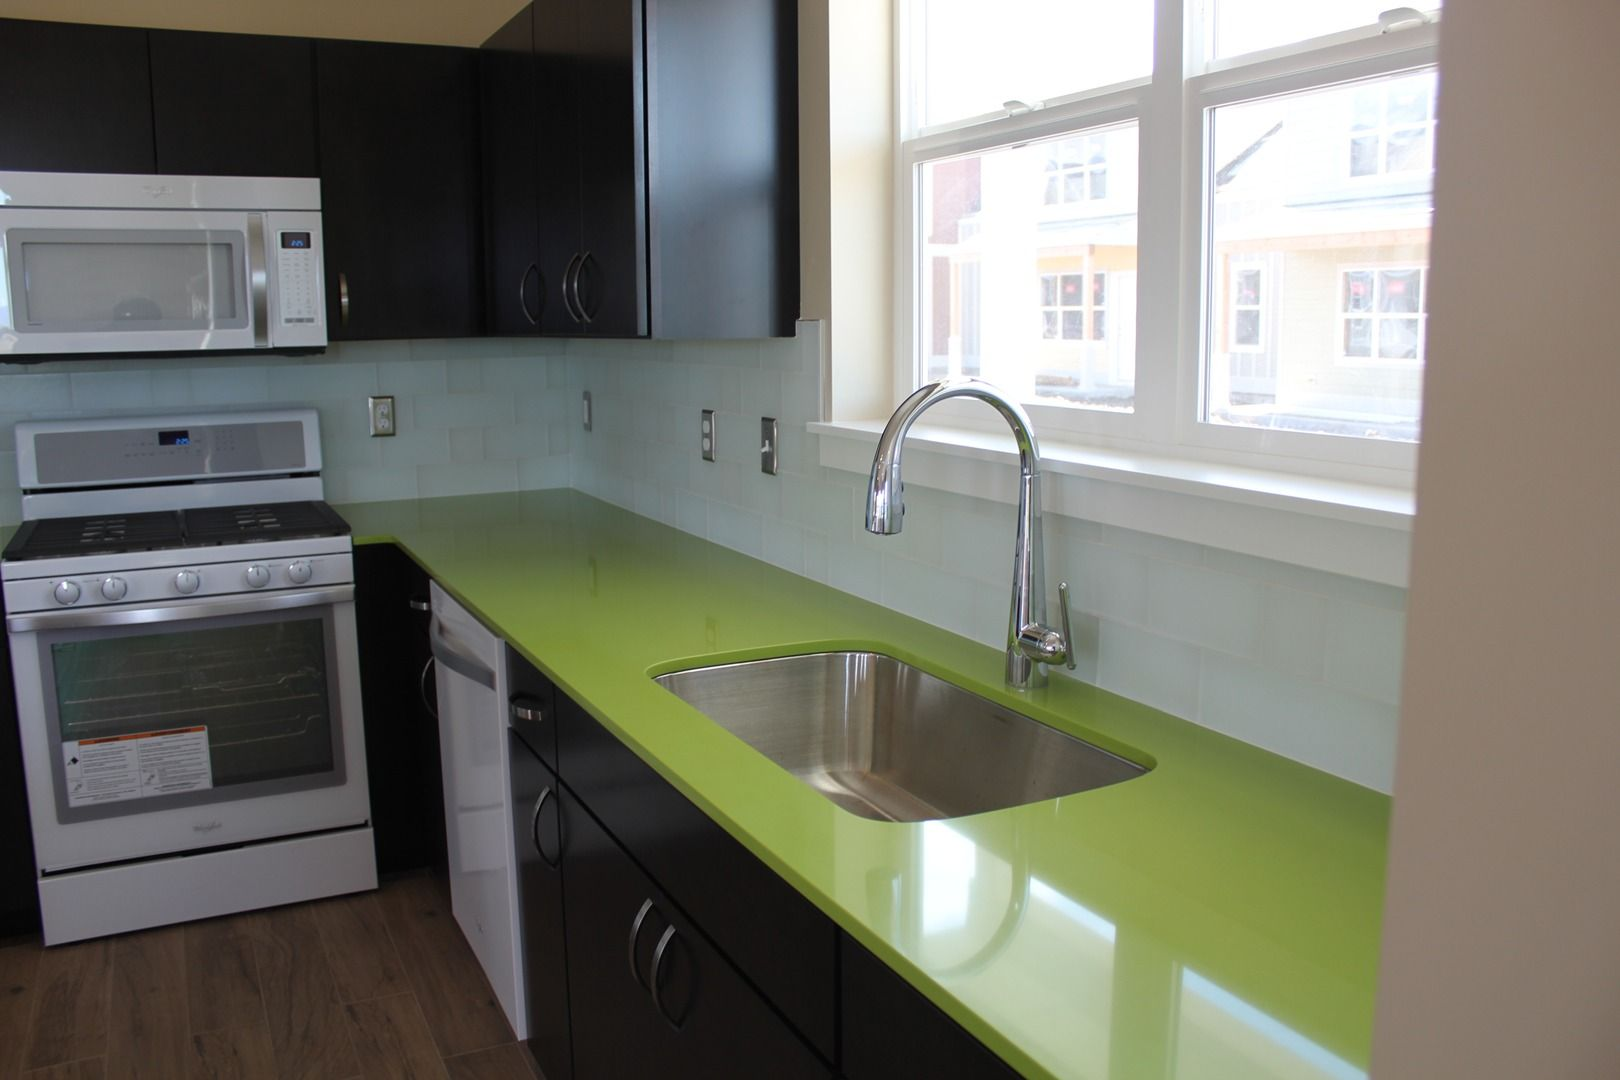 Kitchen Lime Green Quartz Countertops Montana Tile Stone Floors That Look Like Wood Bozeman Cp Haus